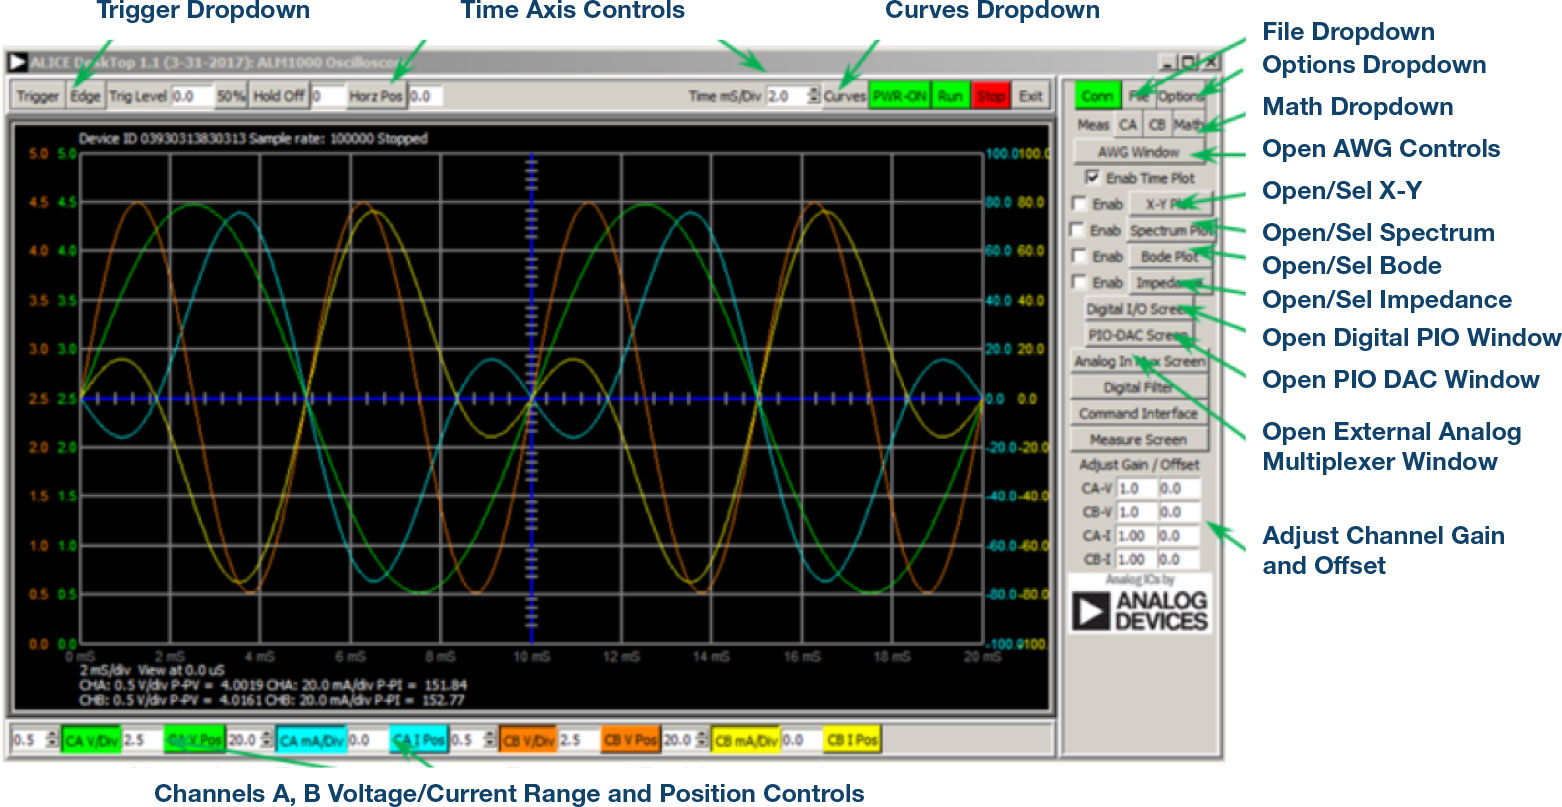 Transient Response In Rlc Circuit Trainer Object Study The Transient